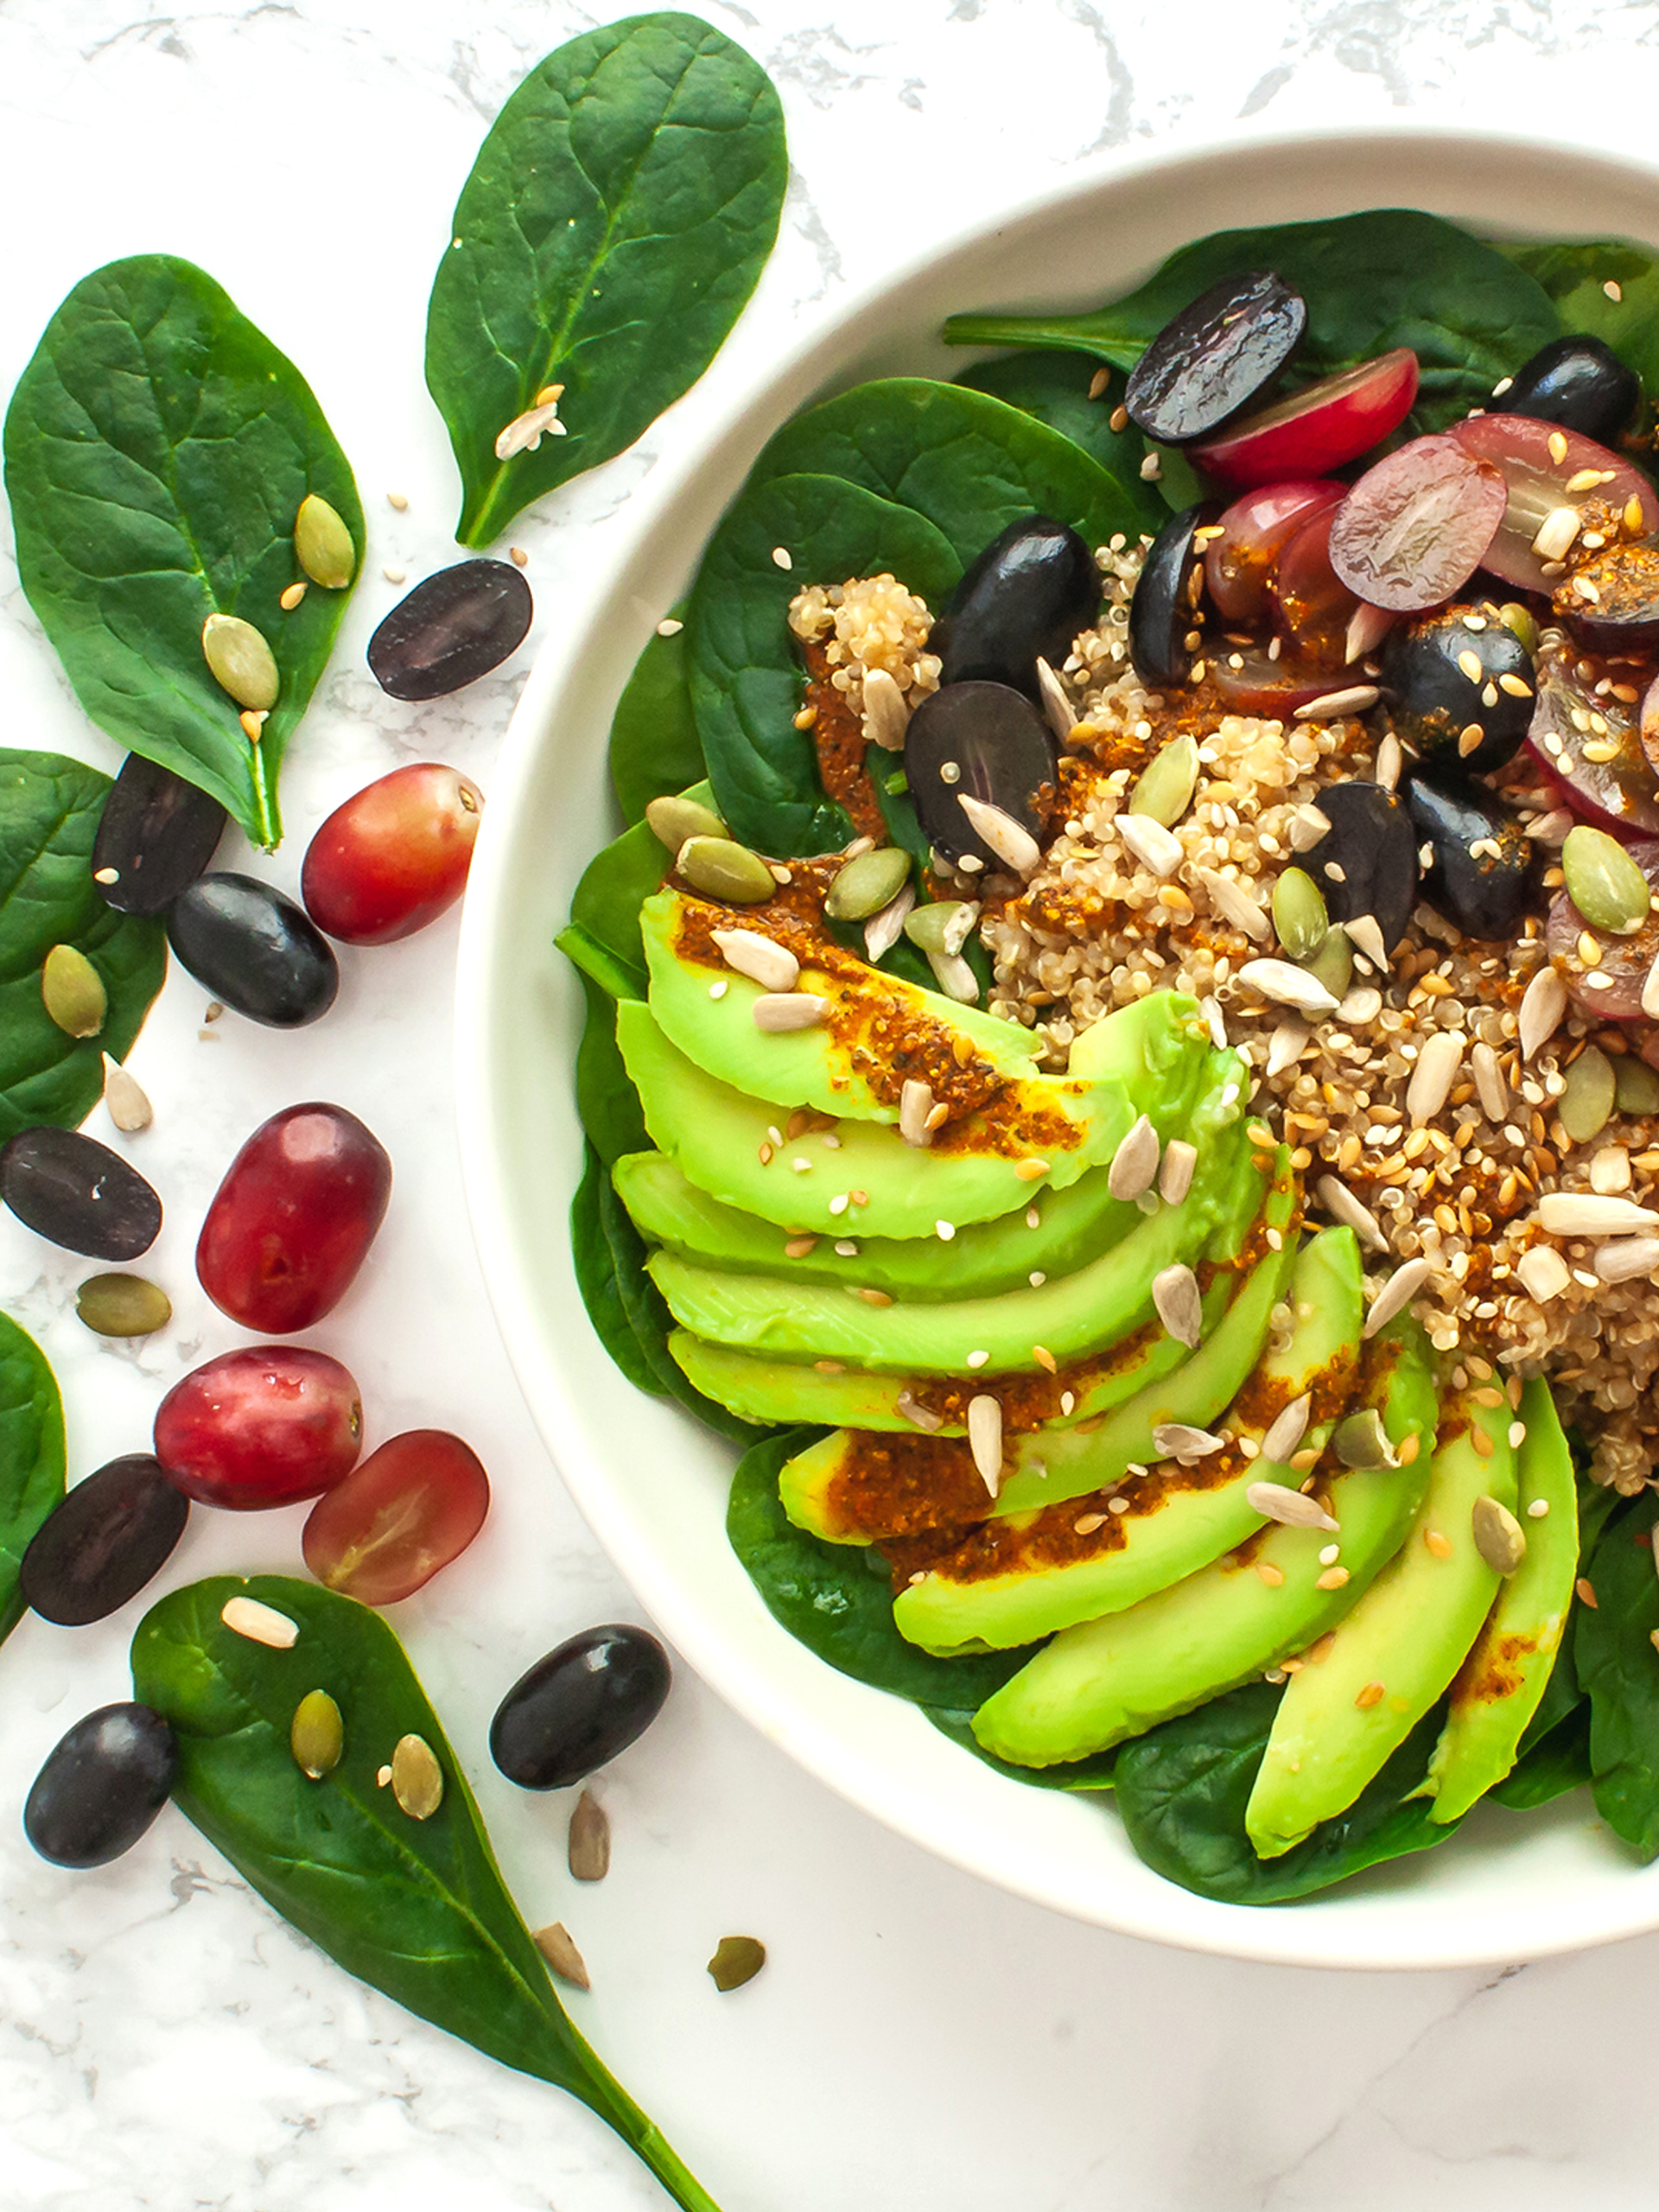 Quinoa Avocado Spinach Salad with Grapes